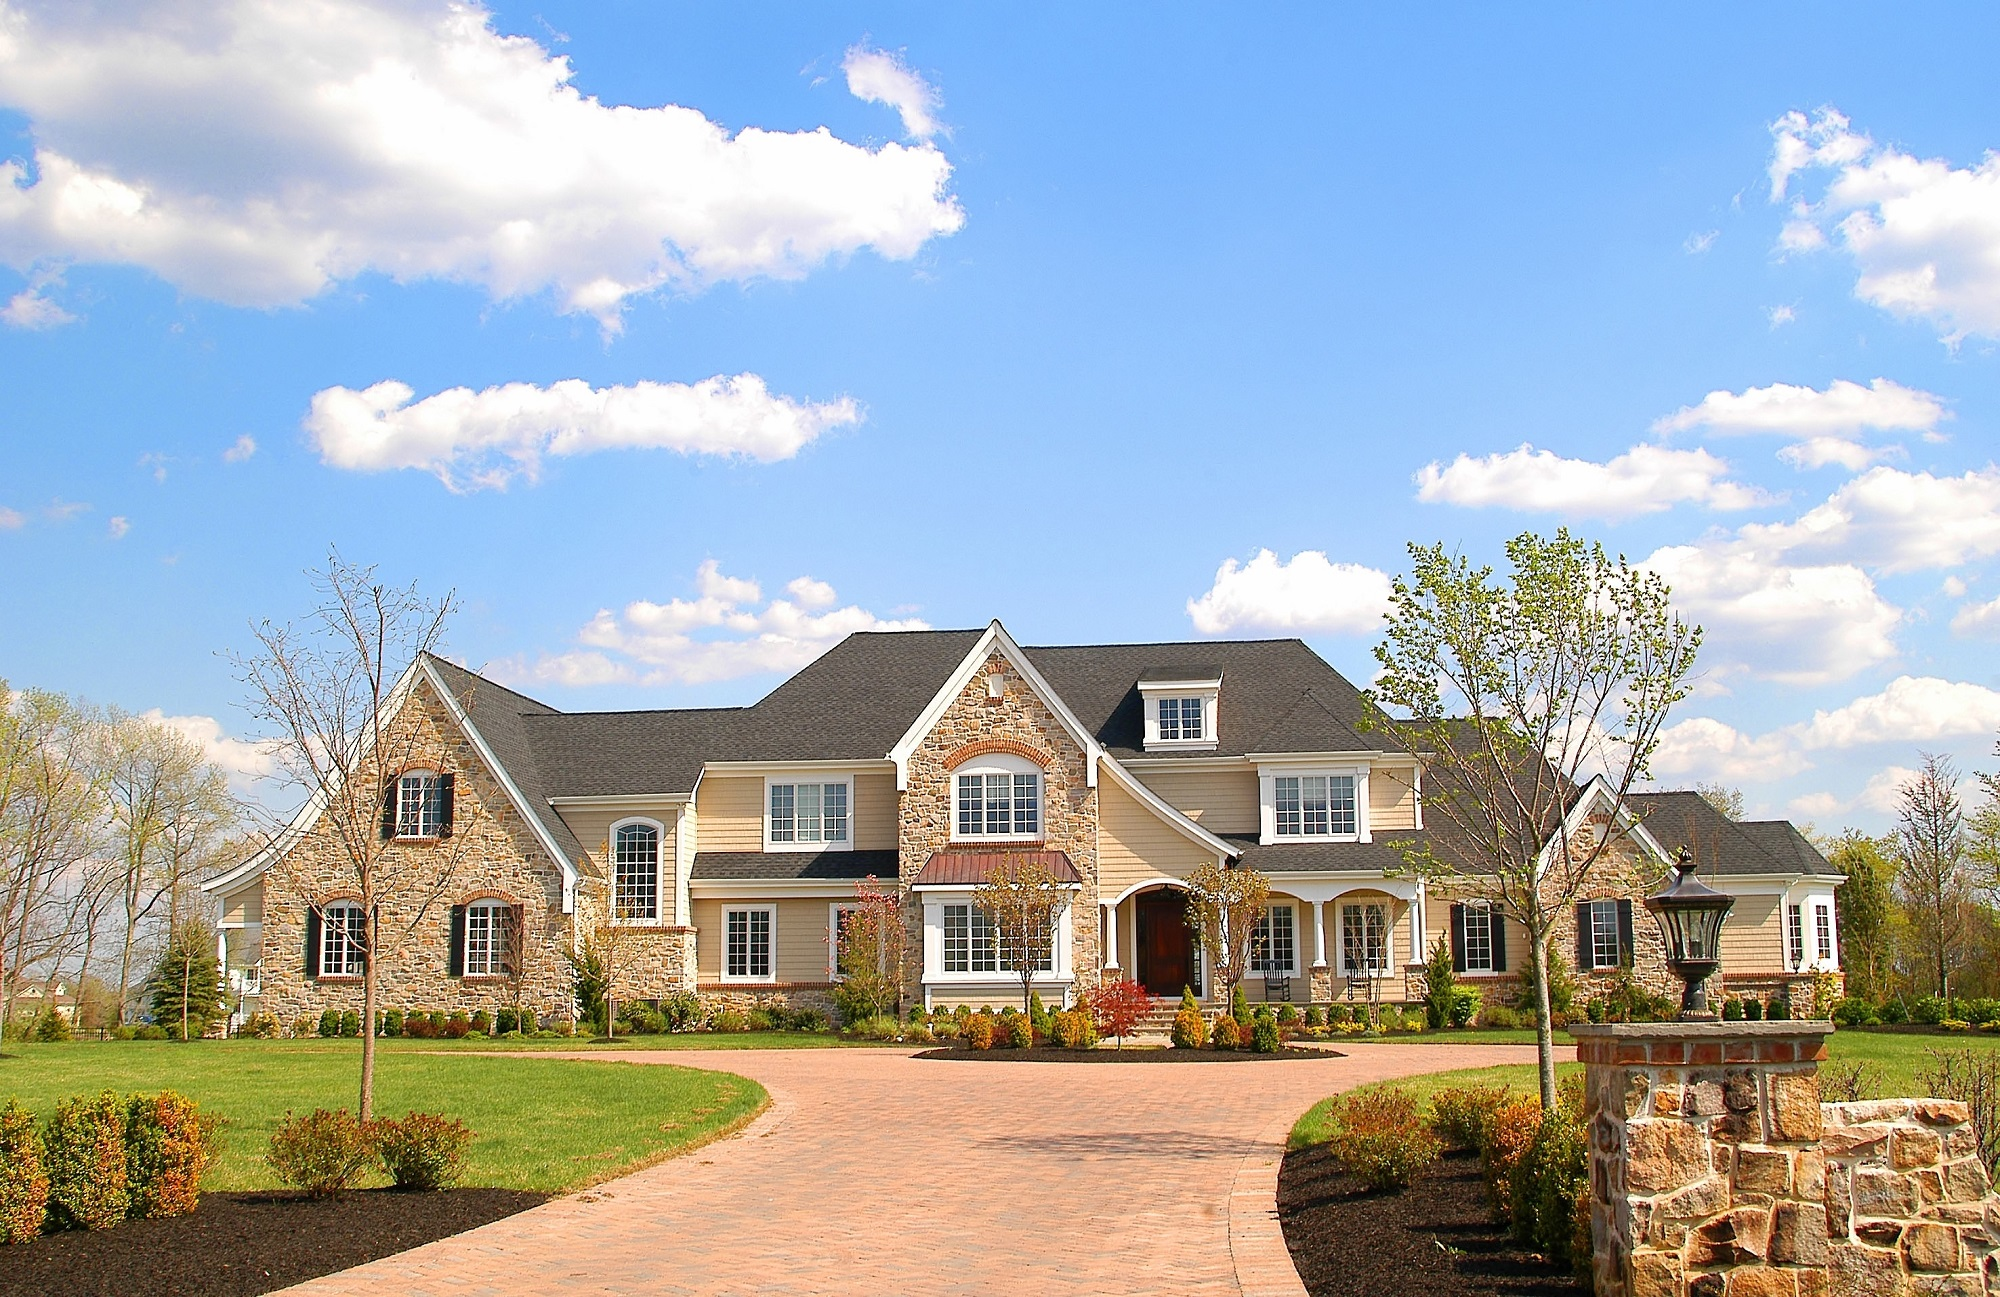 Ho ho kus dream homes luxury real estate in bergen county for Drem homes